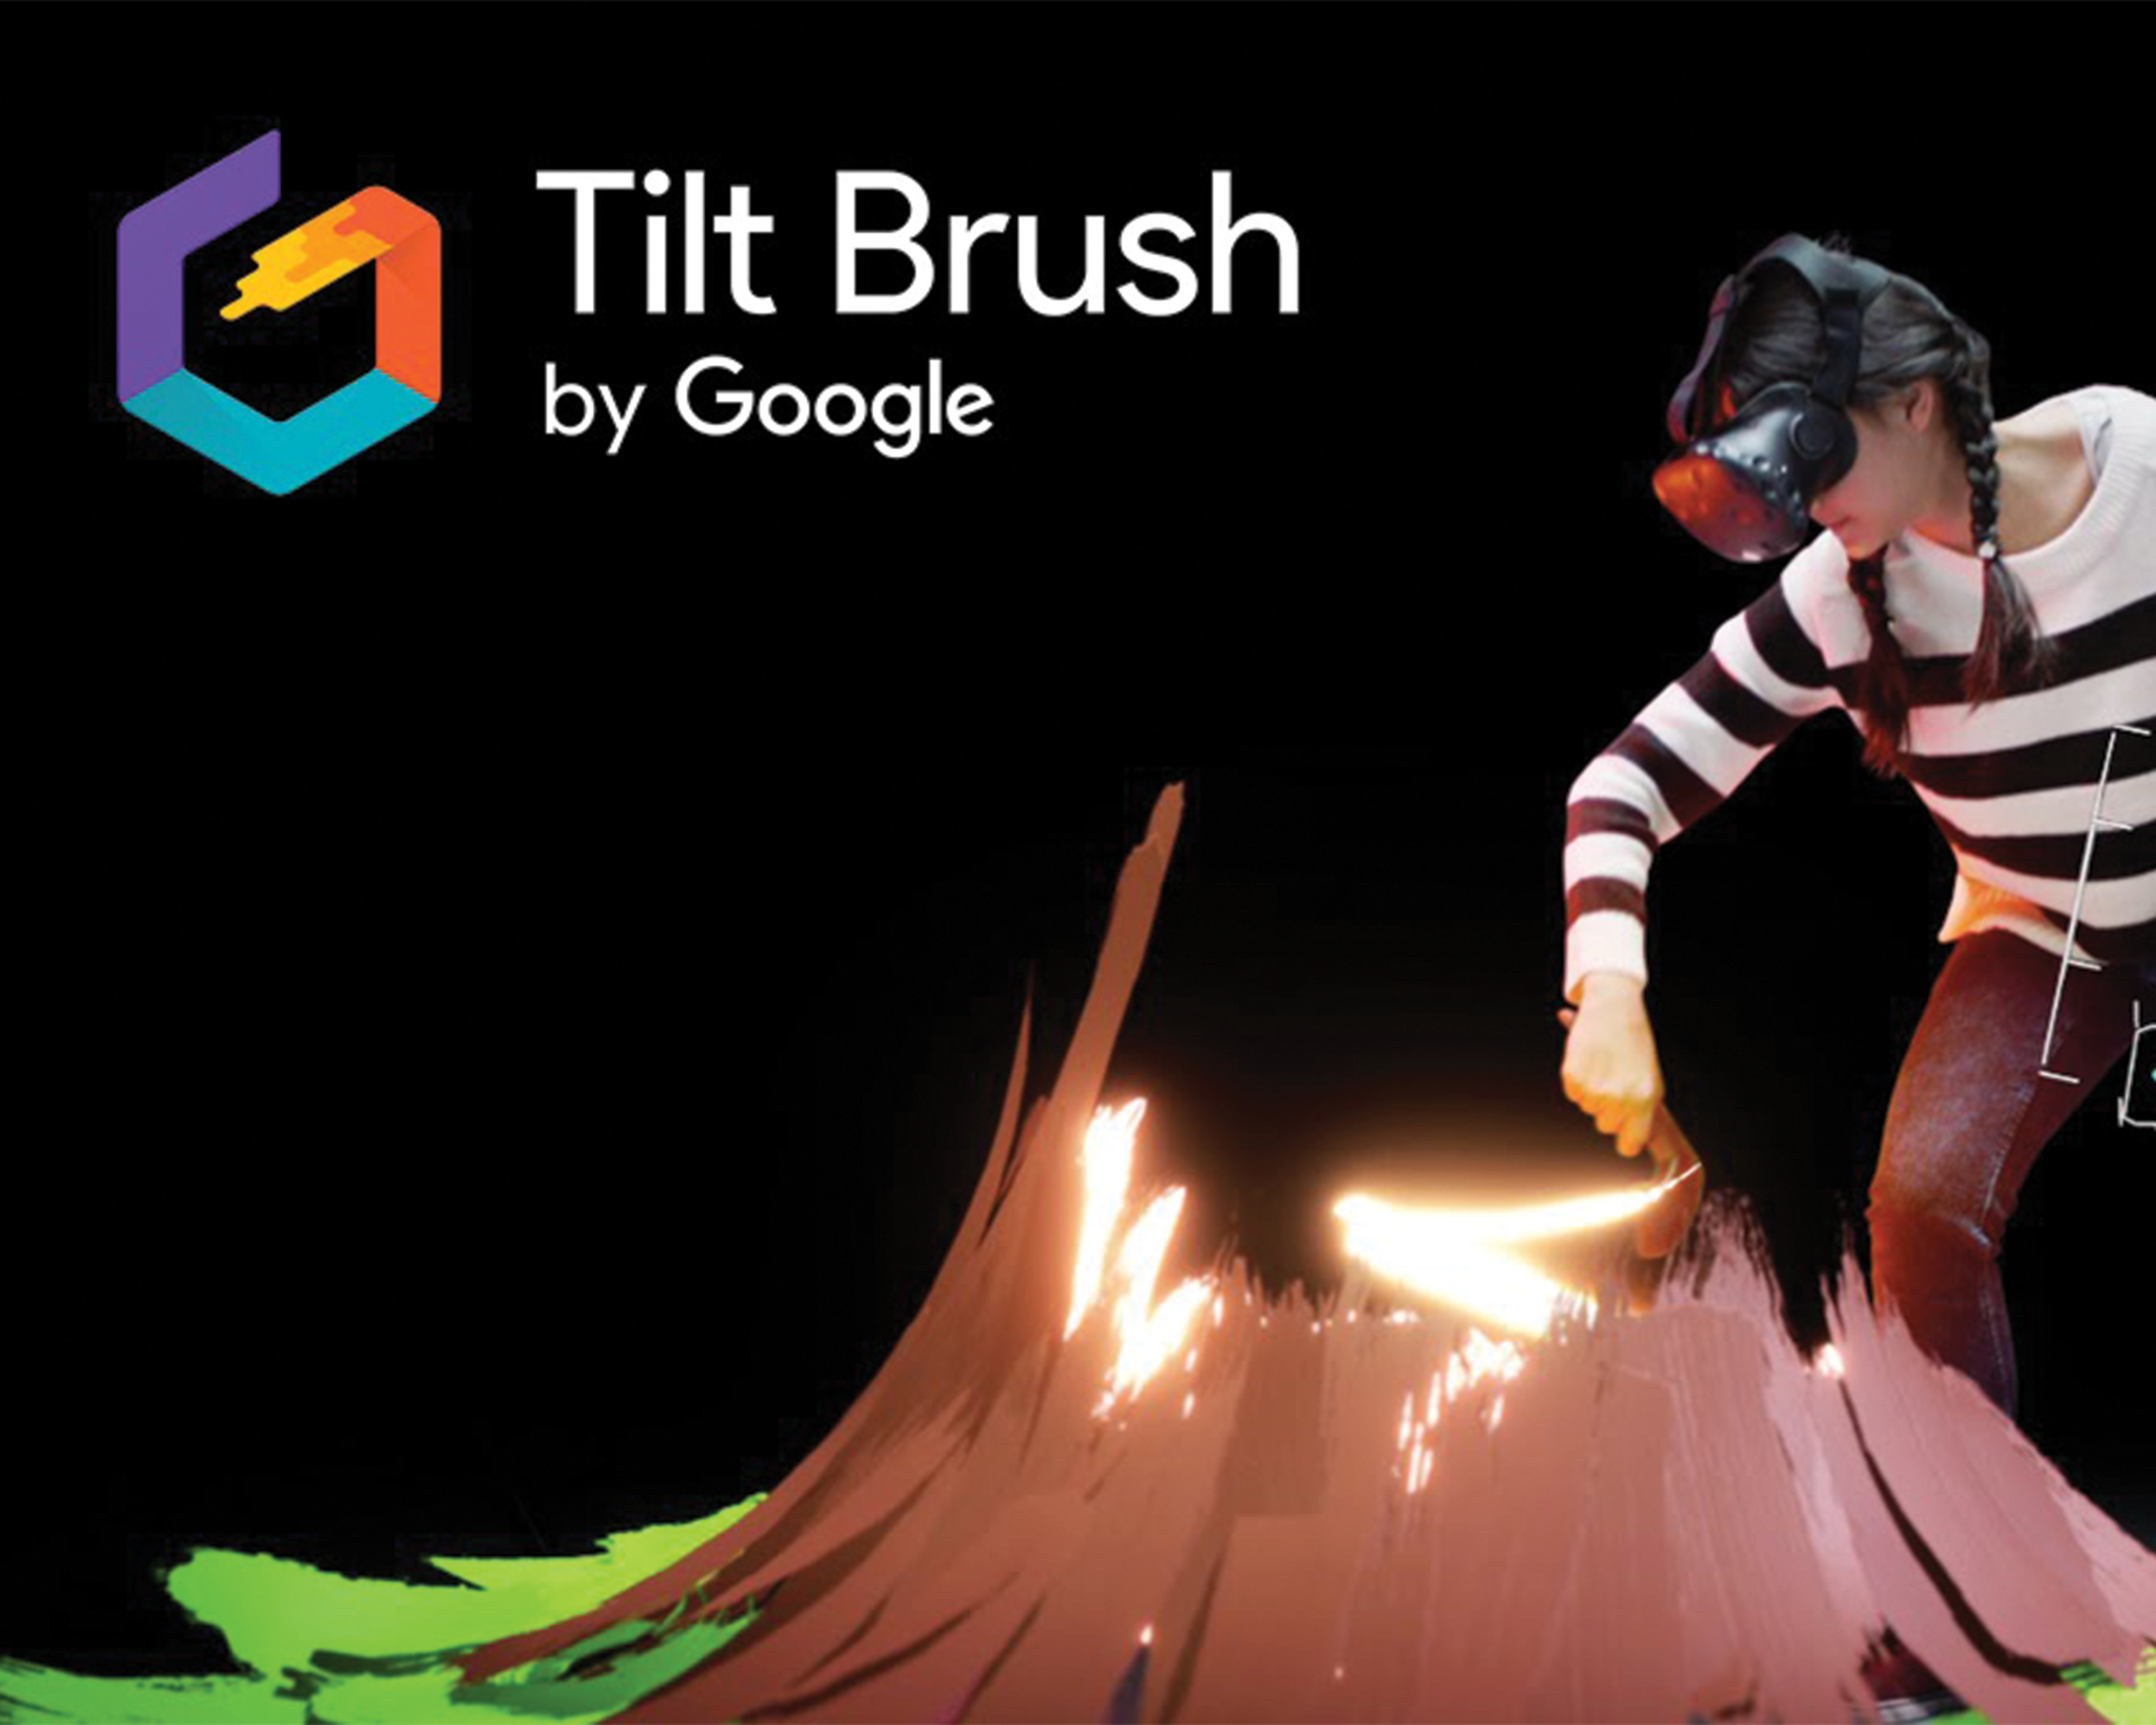 Tilt Brush Virtual Reality game promotional picture